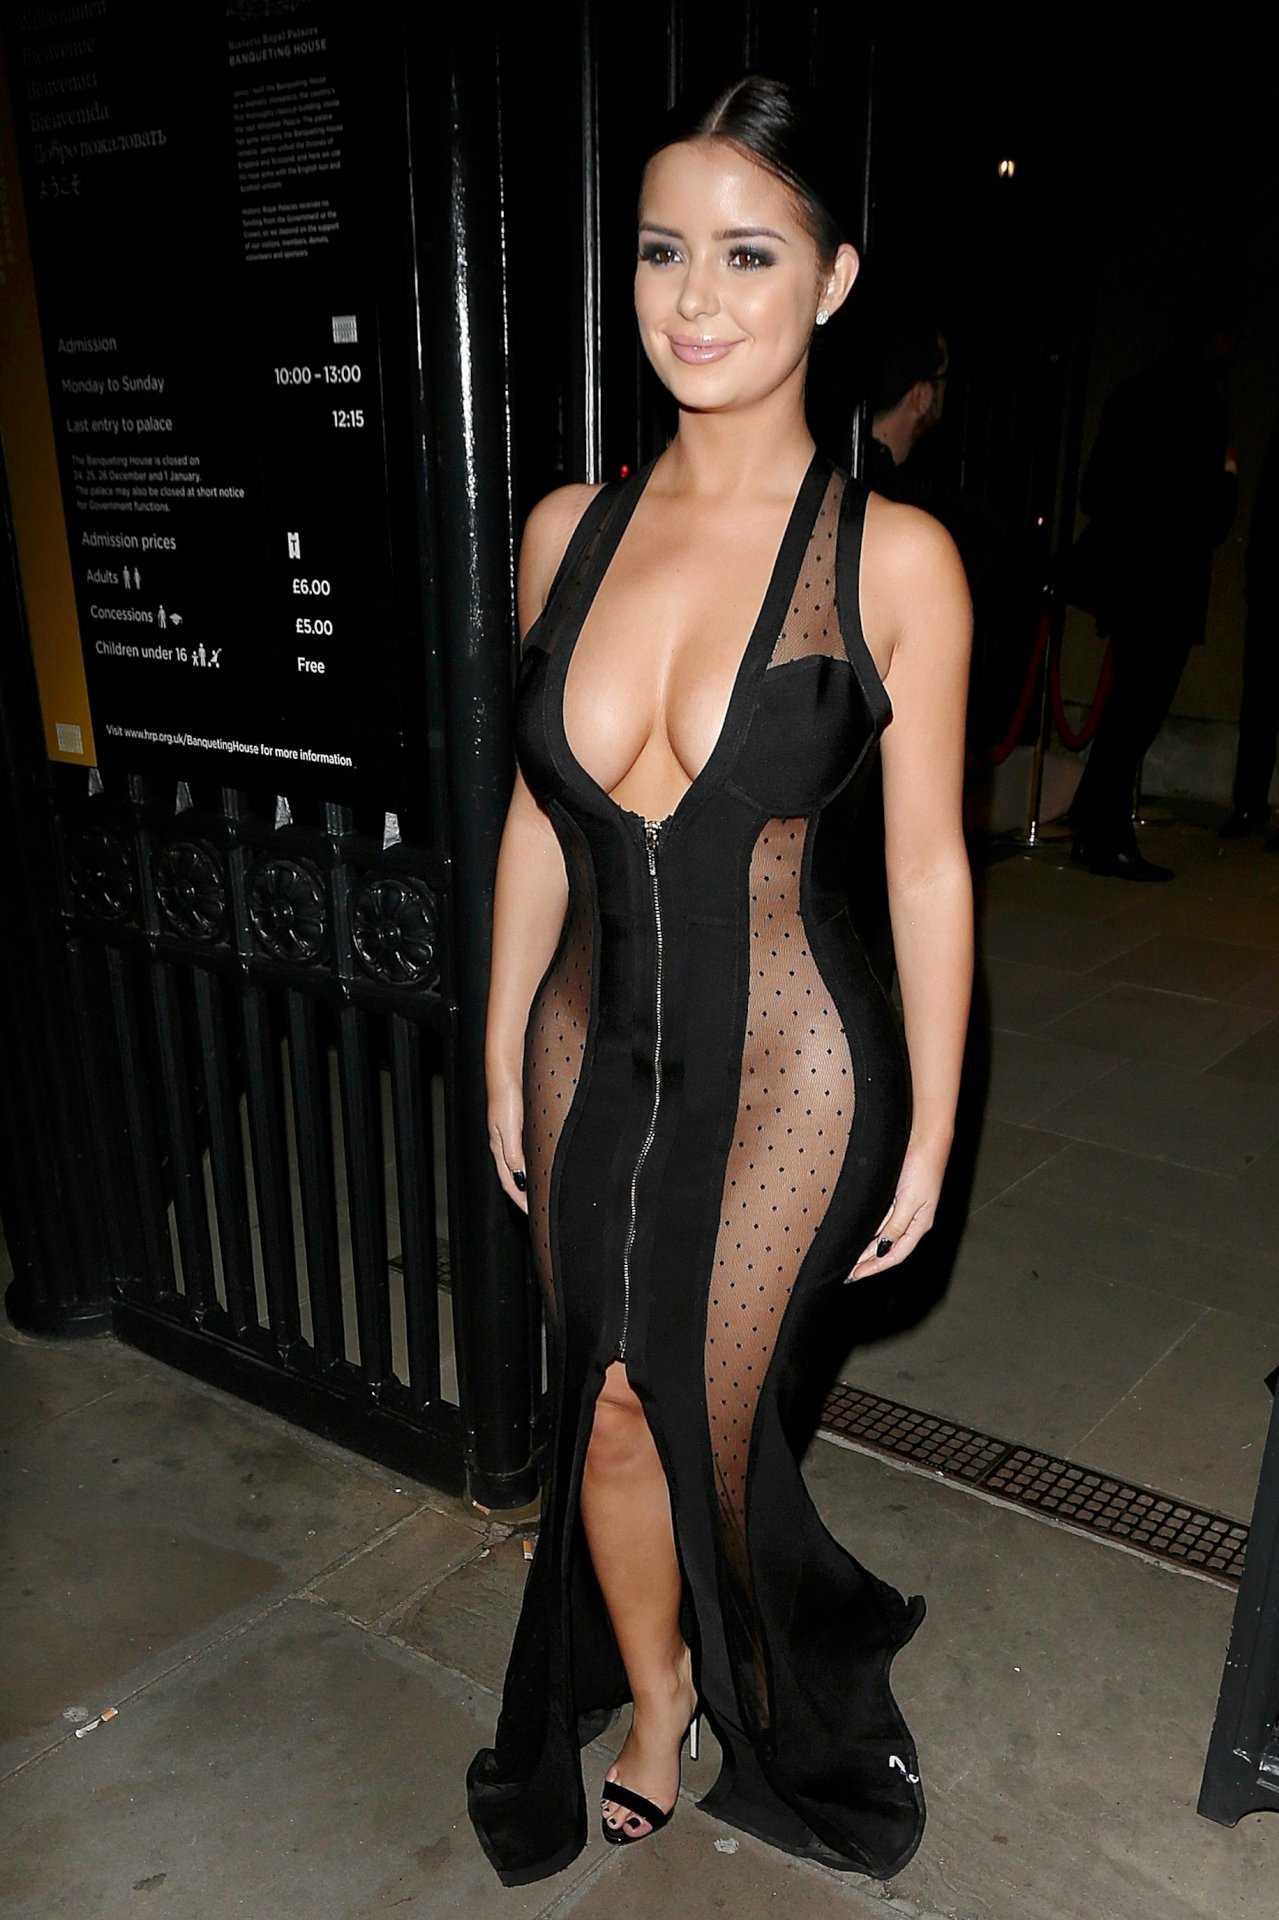 demi-rose-e-seu-vestido-sexy-no-beauty-awards-em-londres09